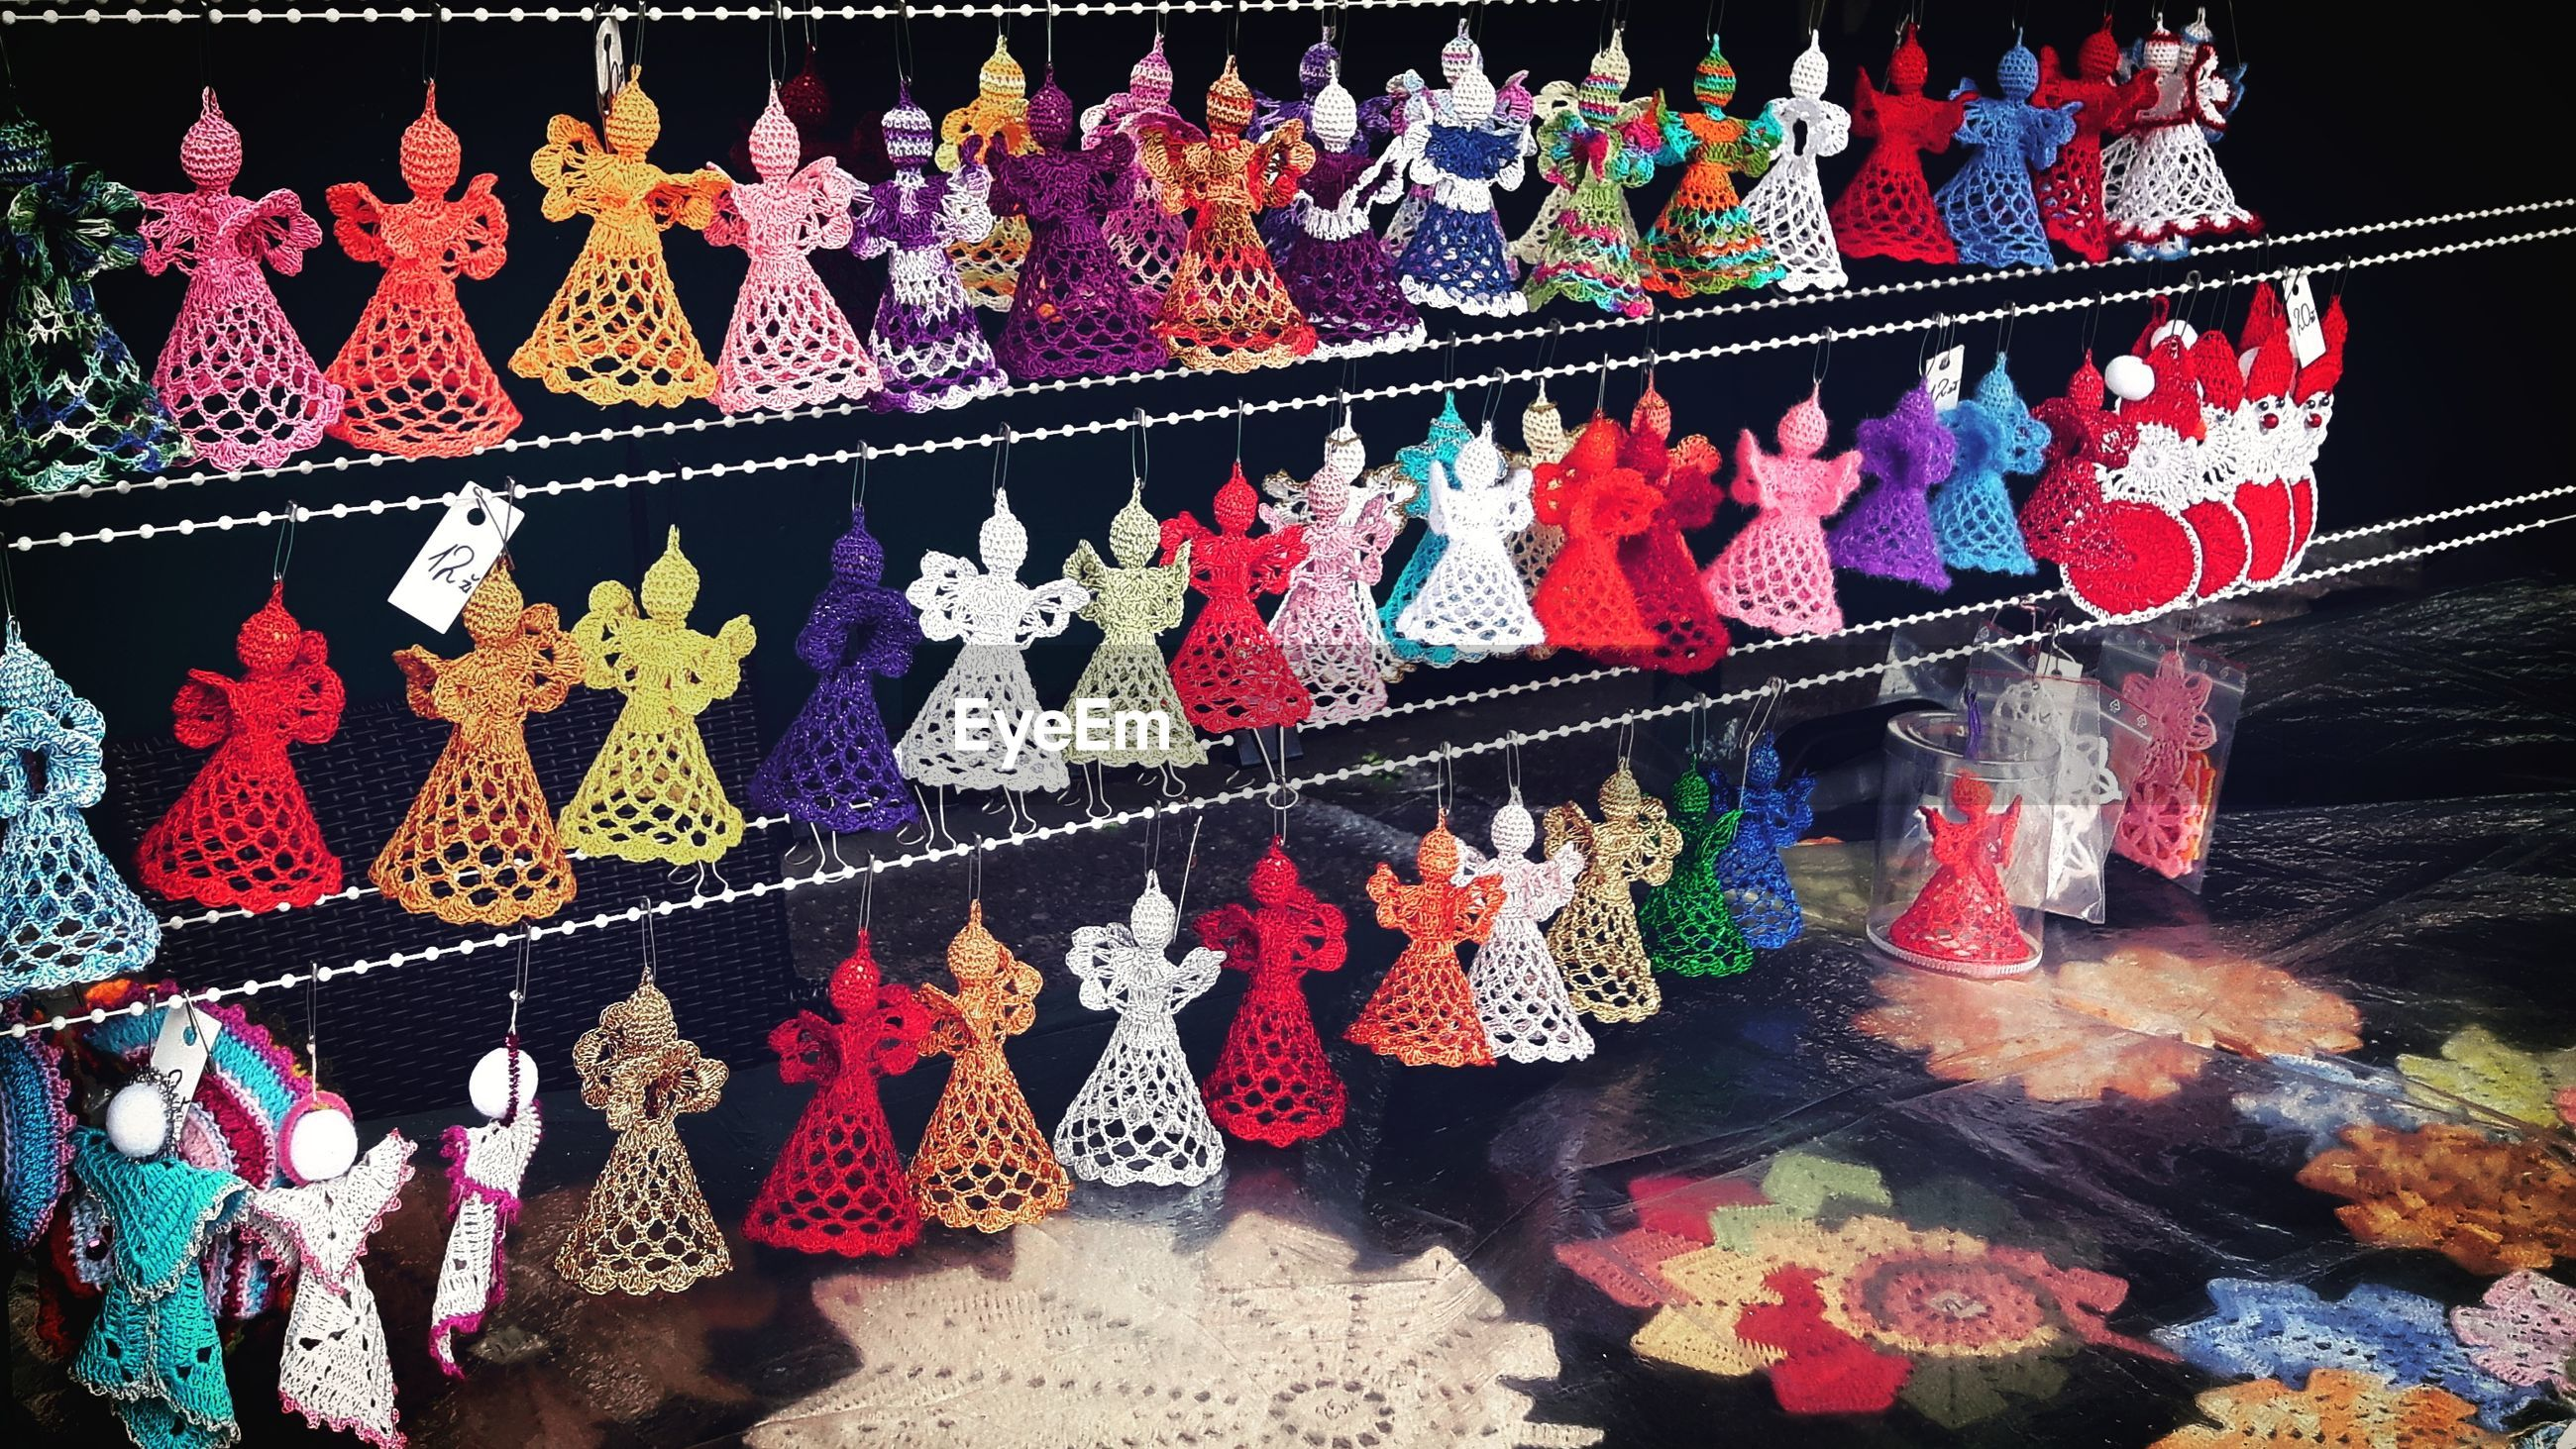 Colorful figurines hanging at market stall